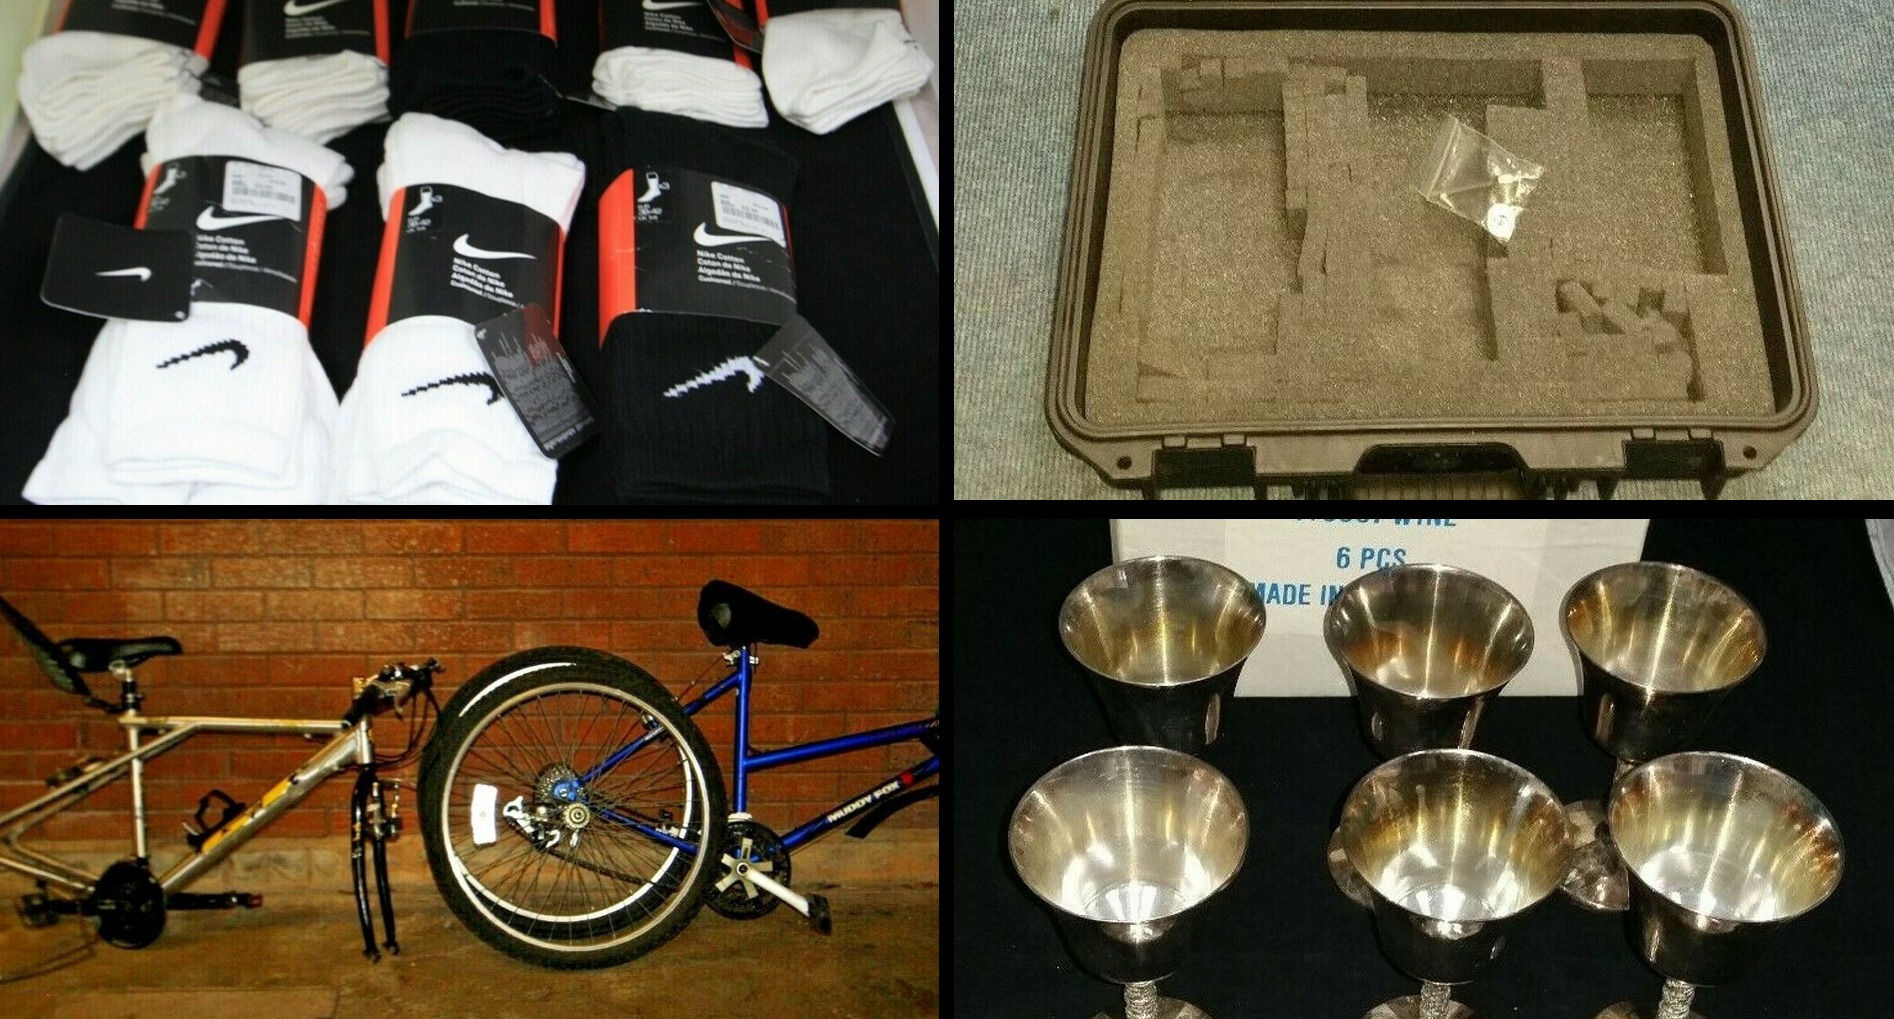 TVP eBay page: What's for sale this week